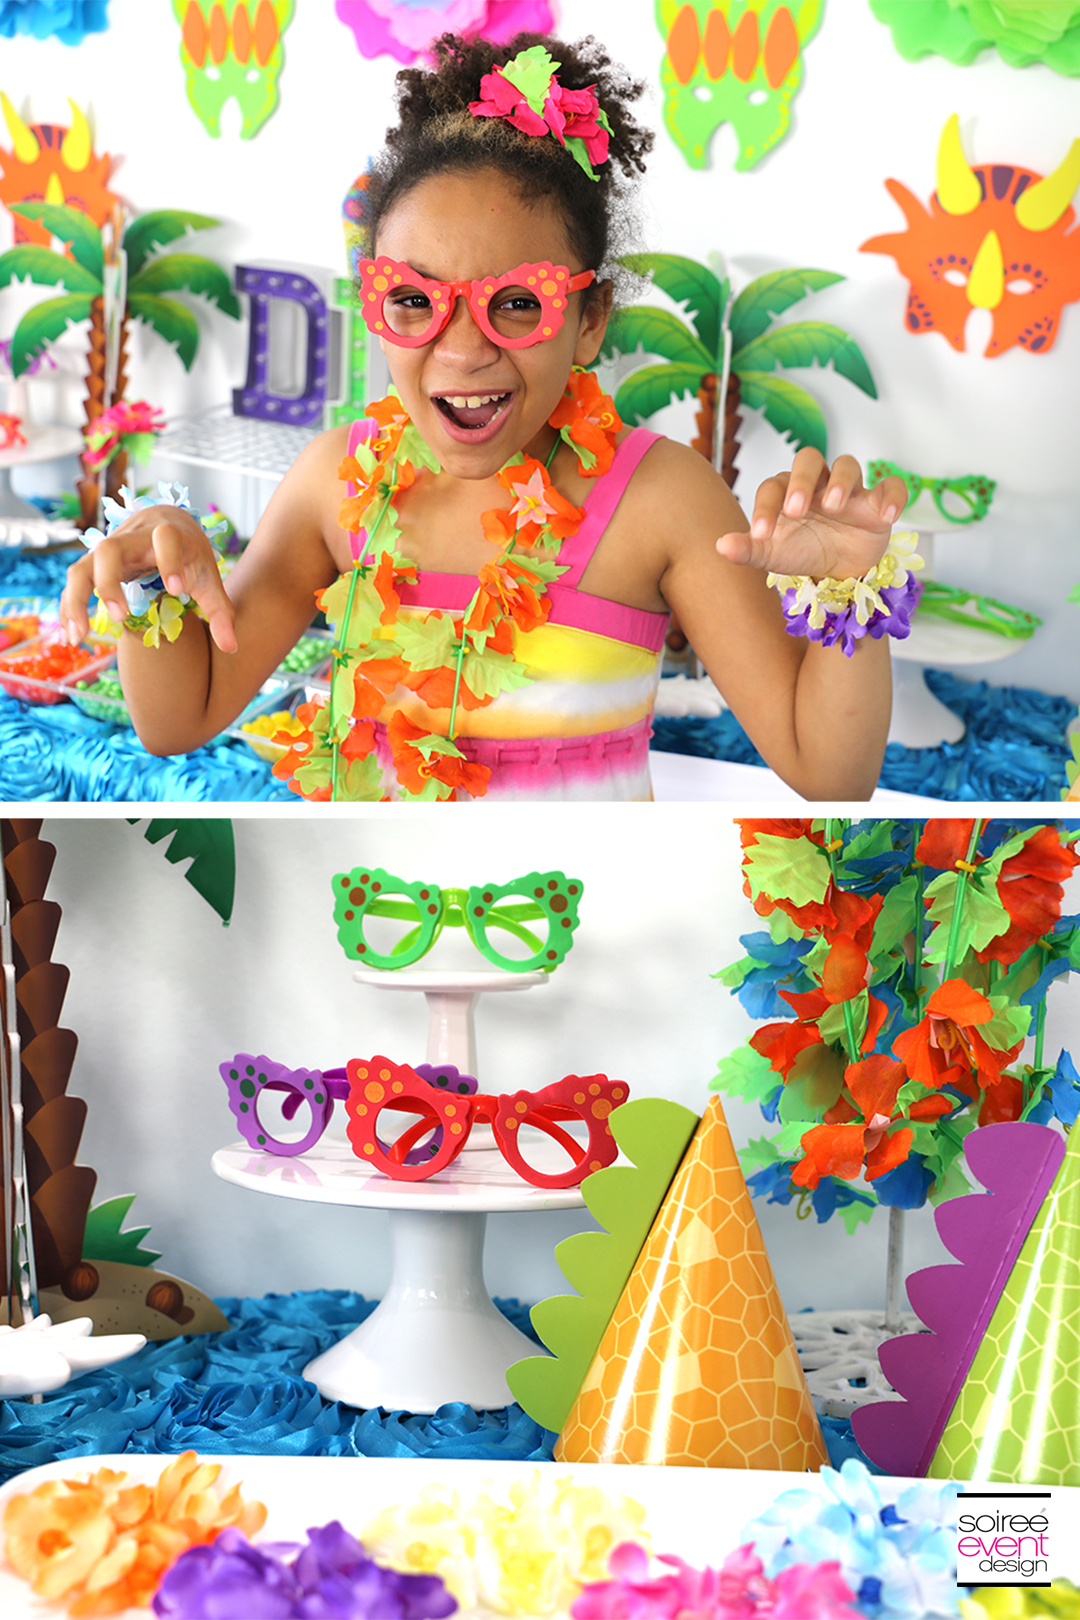 Girly Dinosaur Party Ideas - Dinosaur Party Favors for Girls